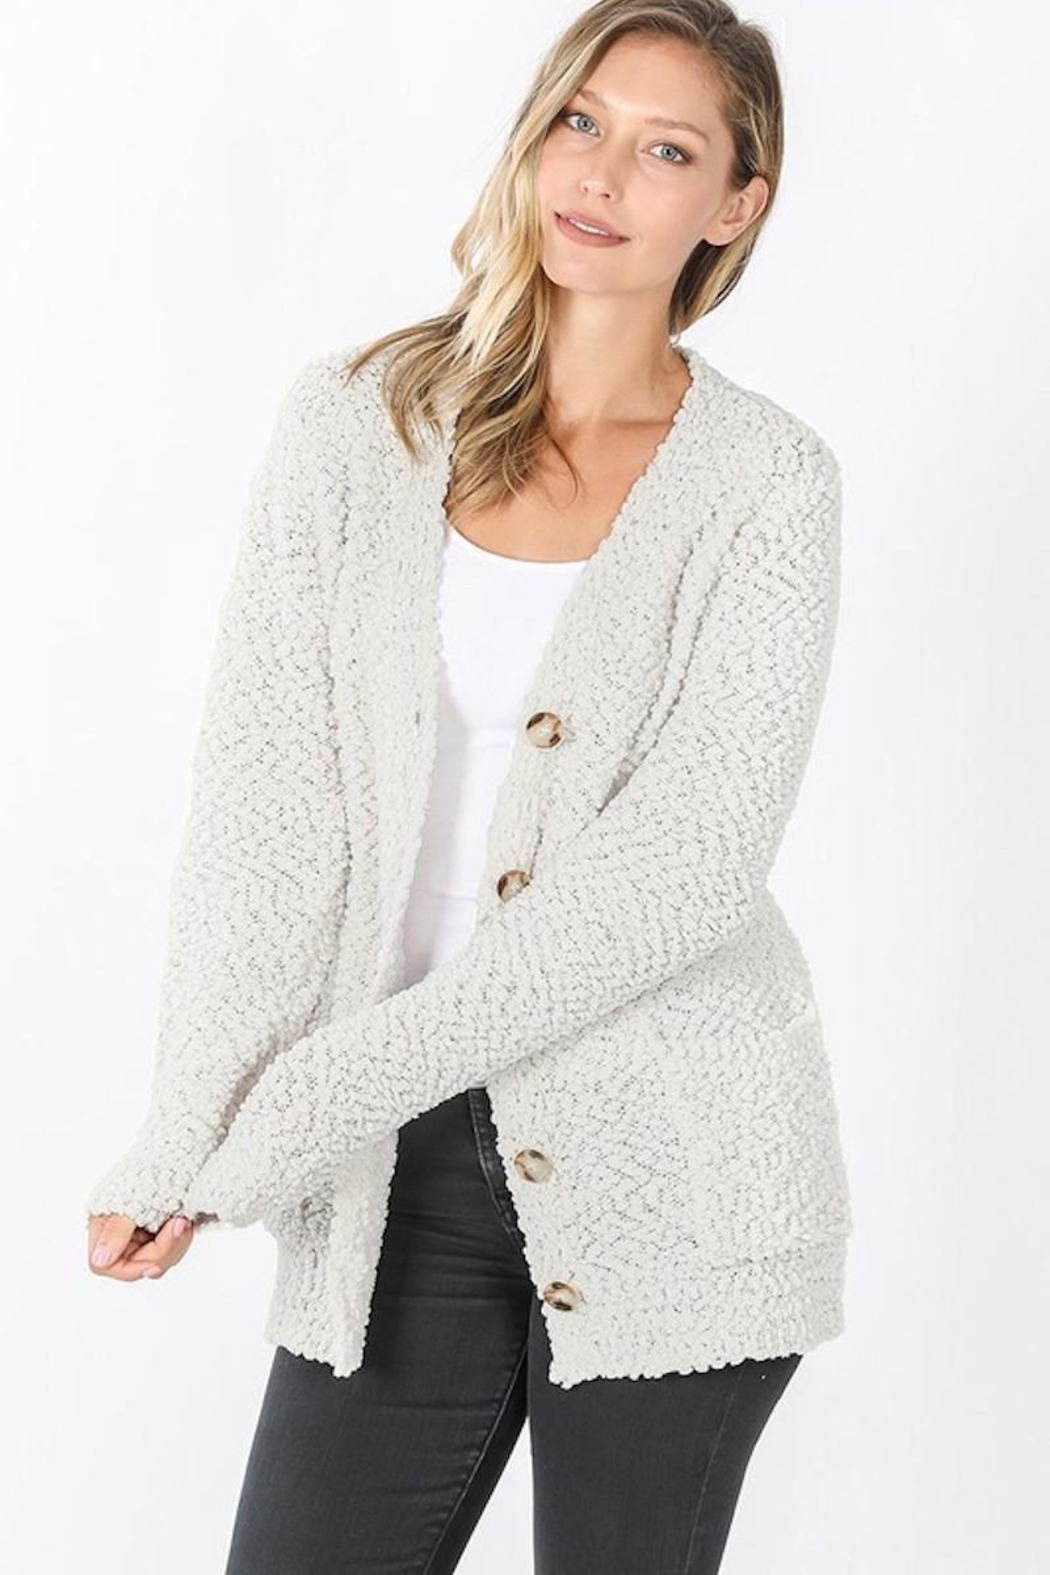 Zeana Outfitters Cream Popcorn Button Cardigan - Main Image